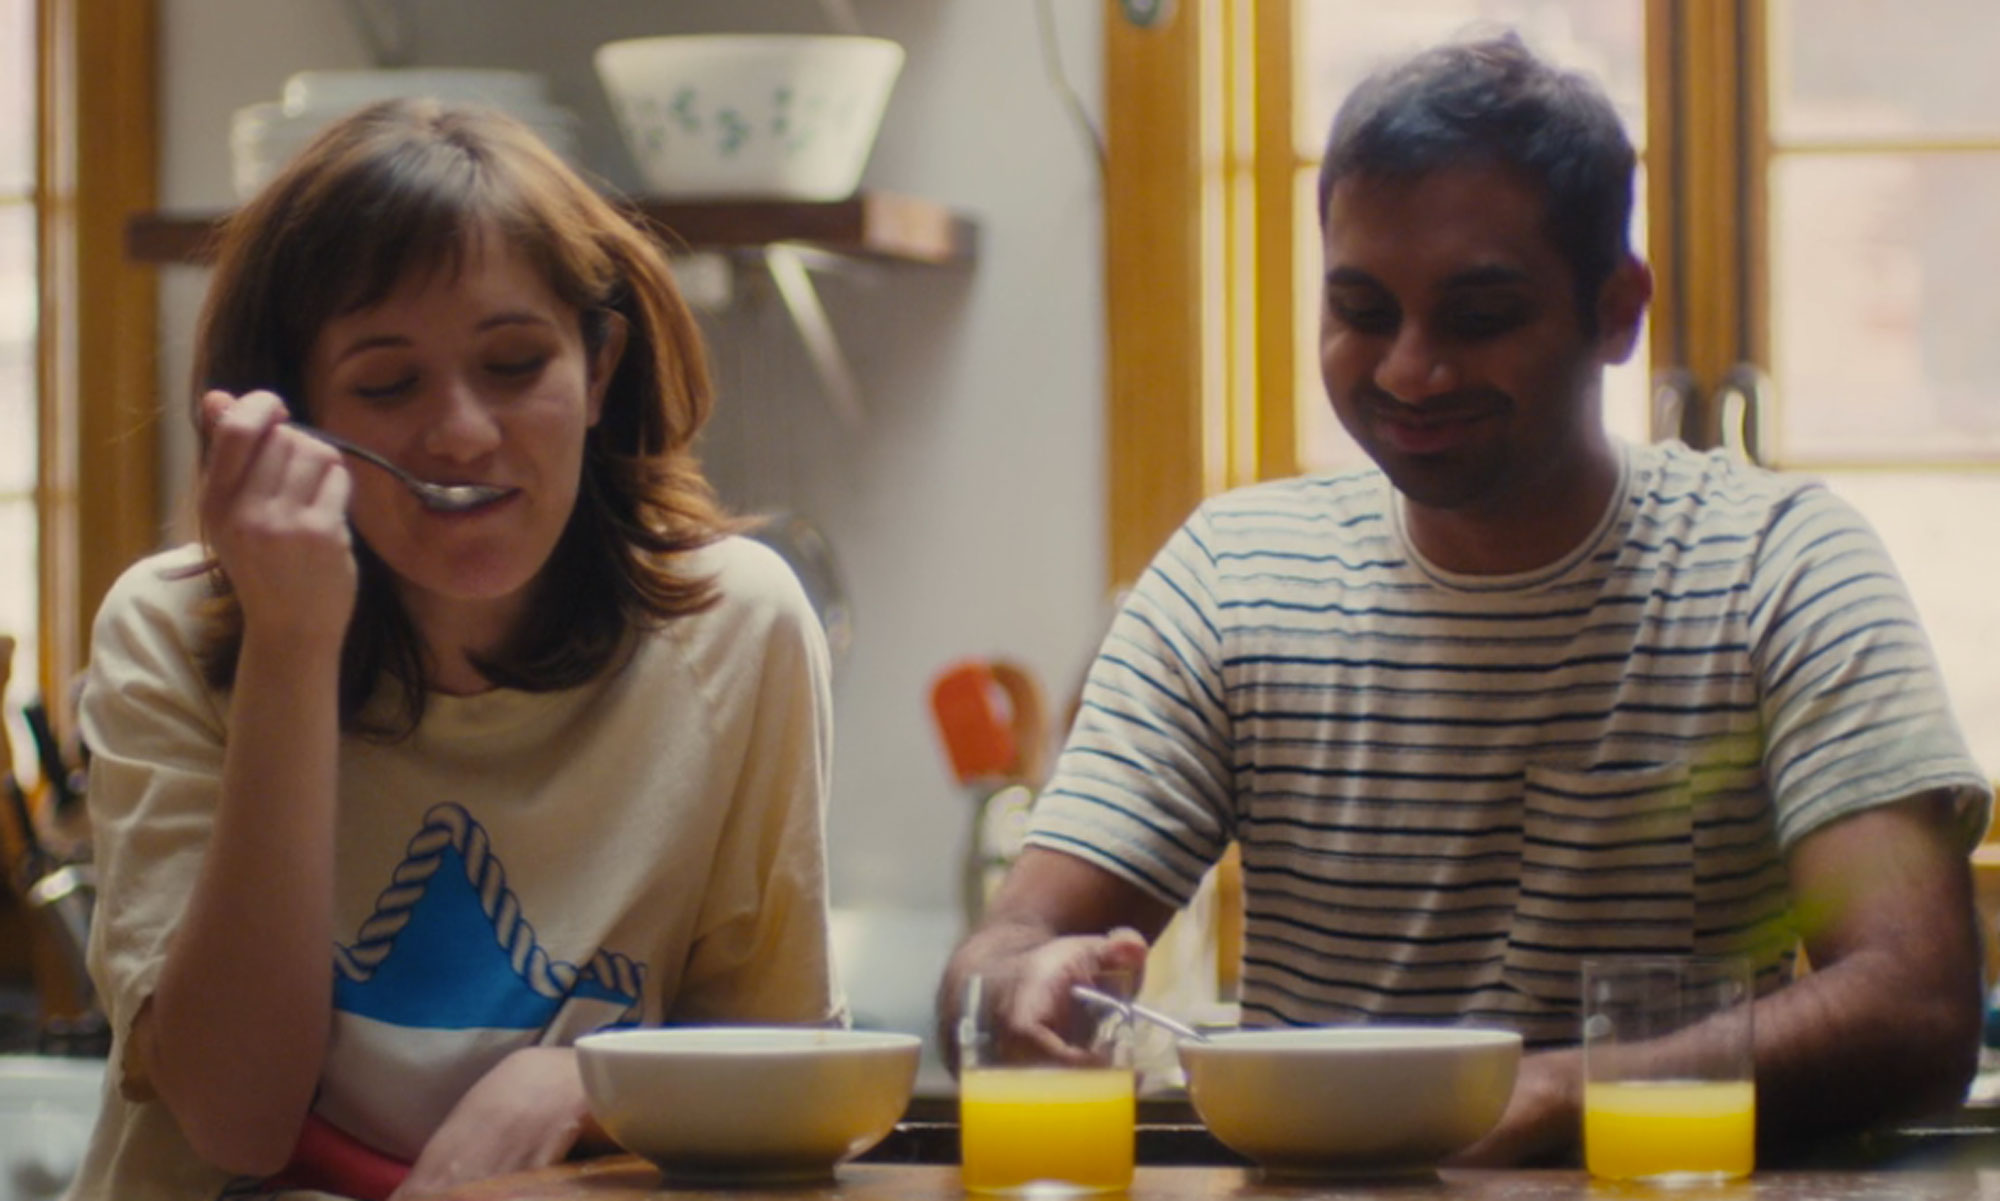 EC: The Breakfast Scene in 'Master of None' Gets Romance Right